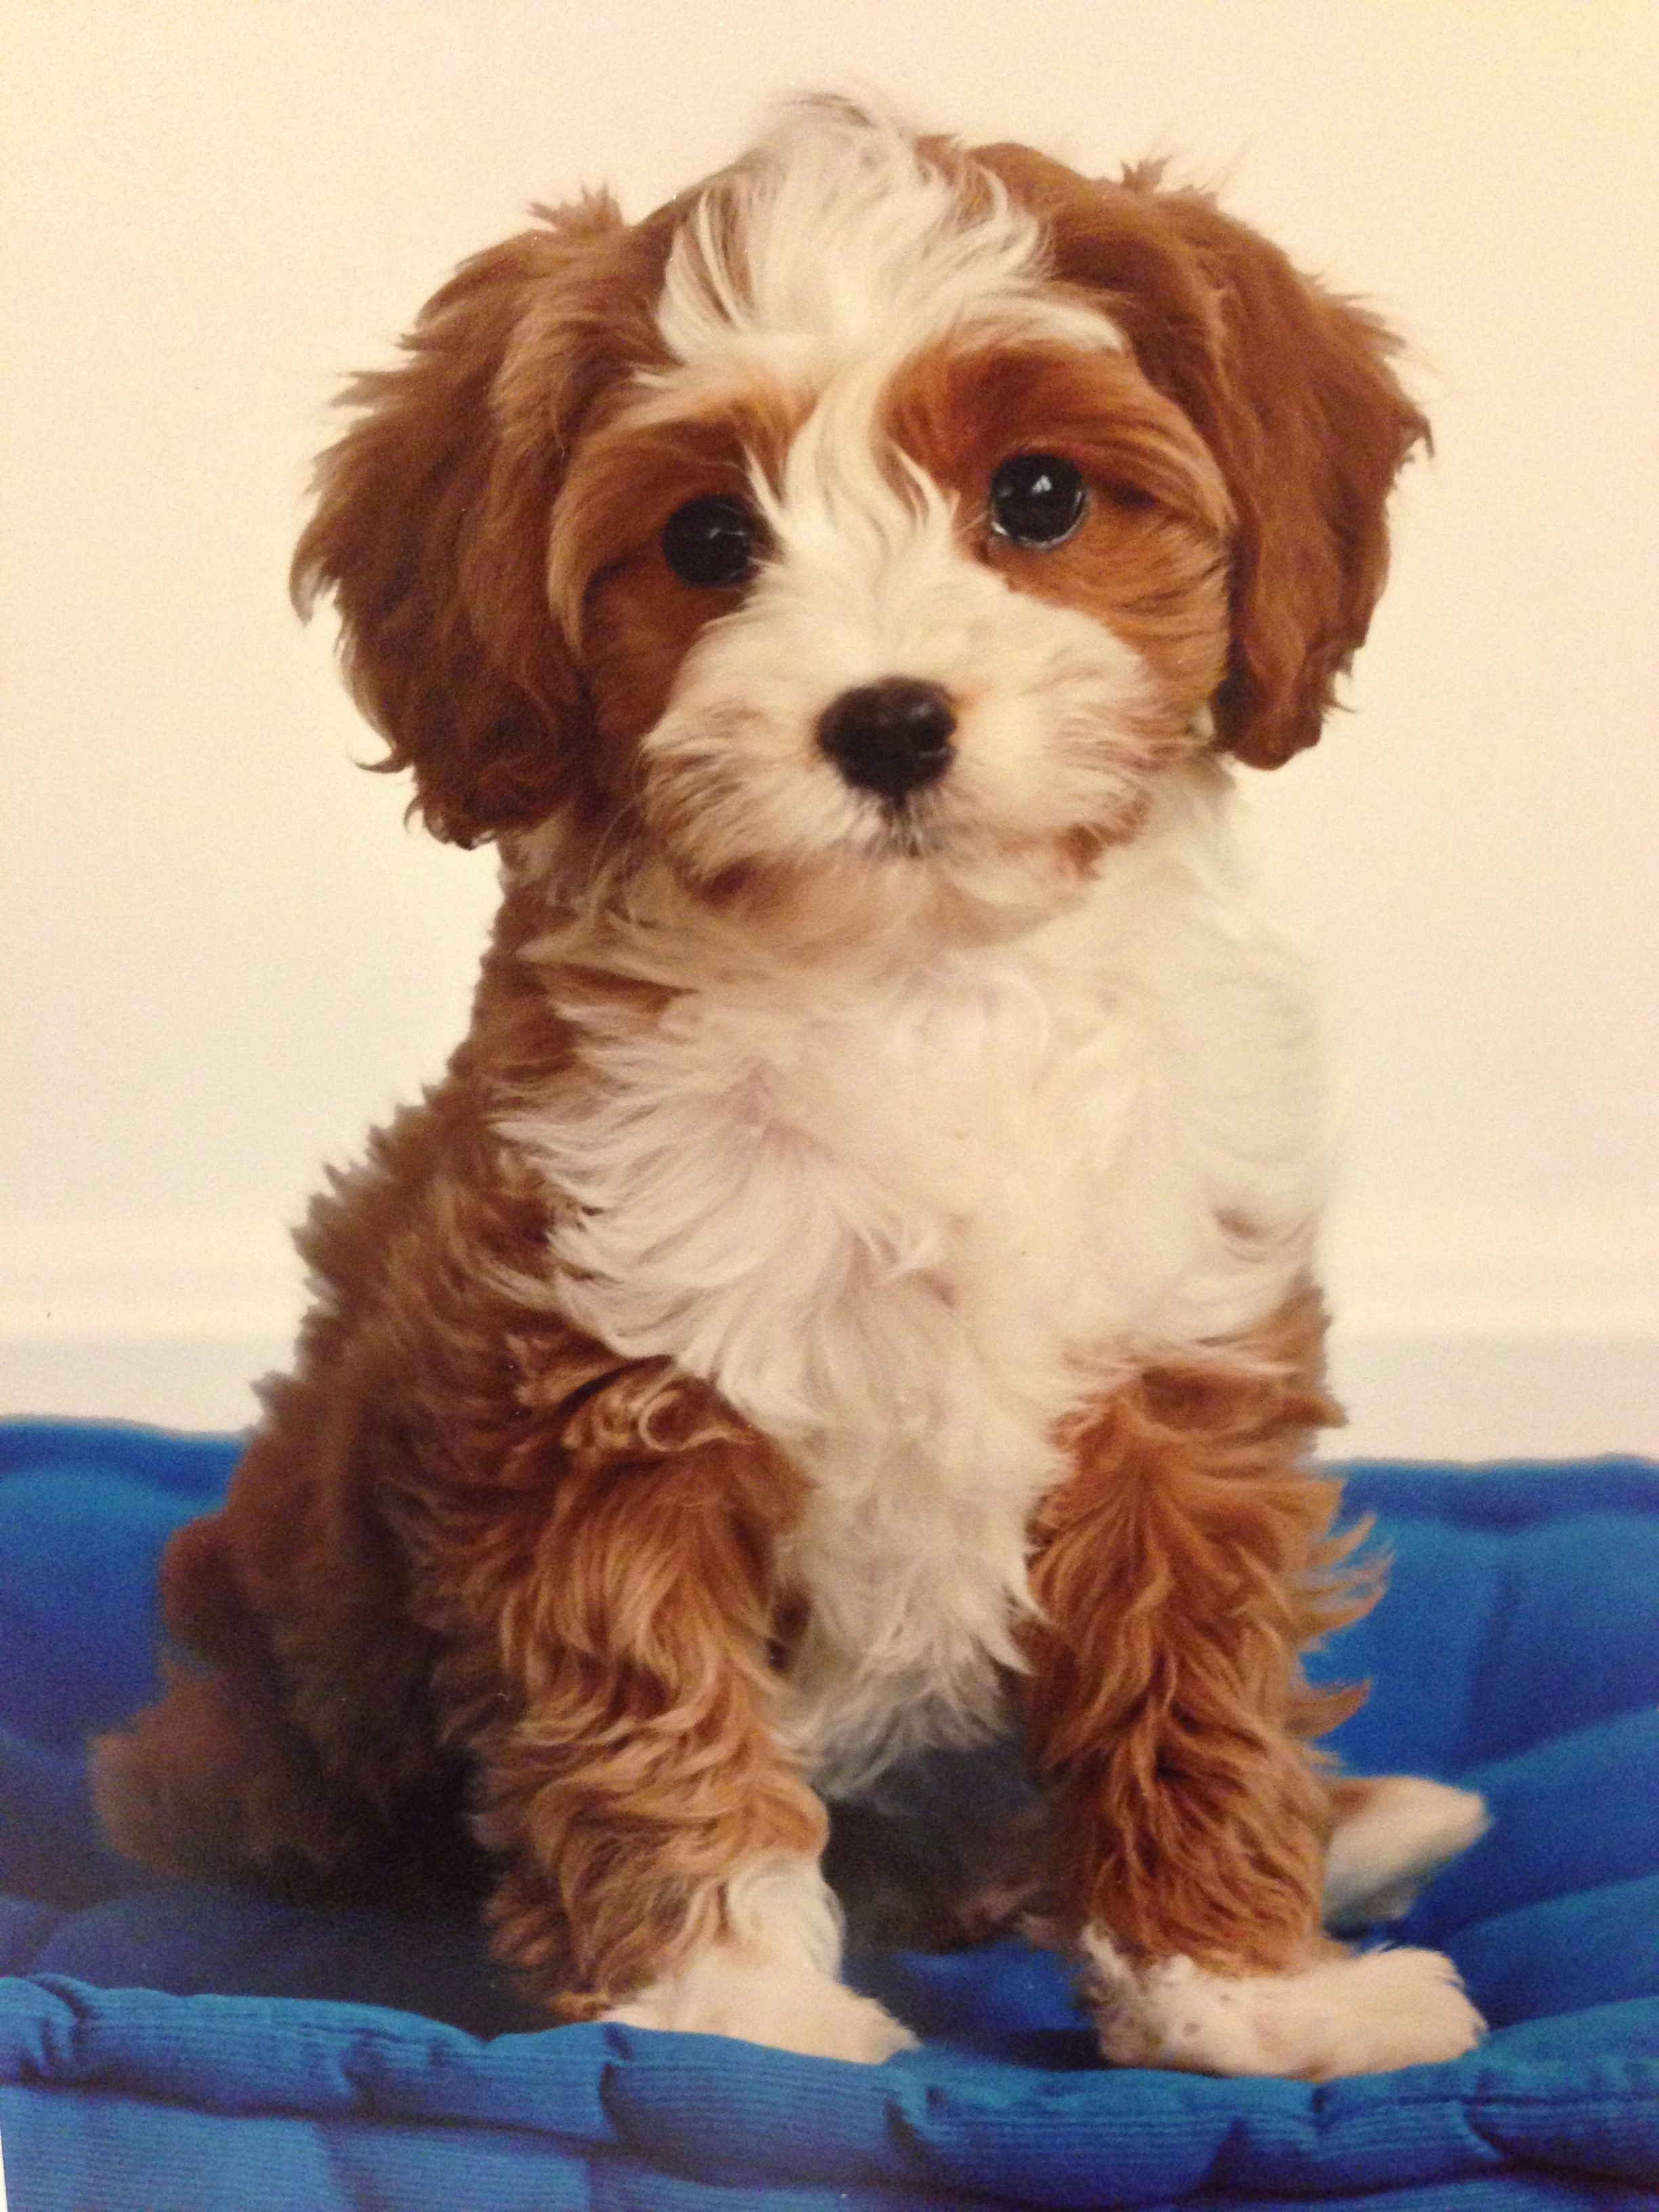 Wish The Cavapoo With Images Cavapoo Puppies Puppies Cute Dogs